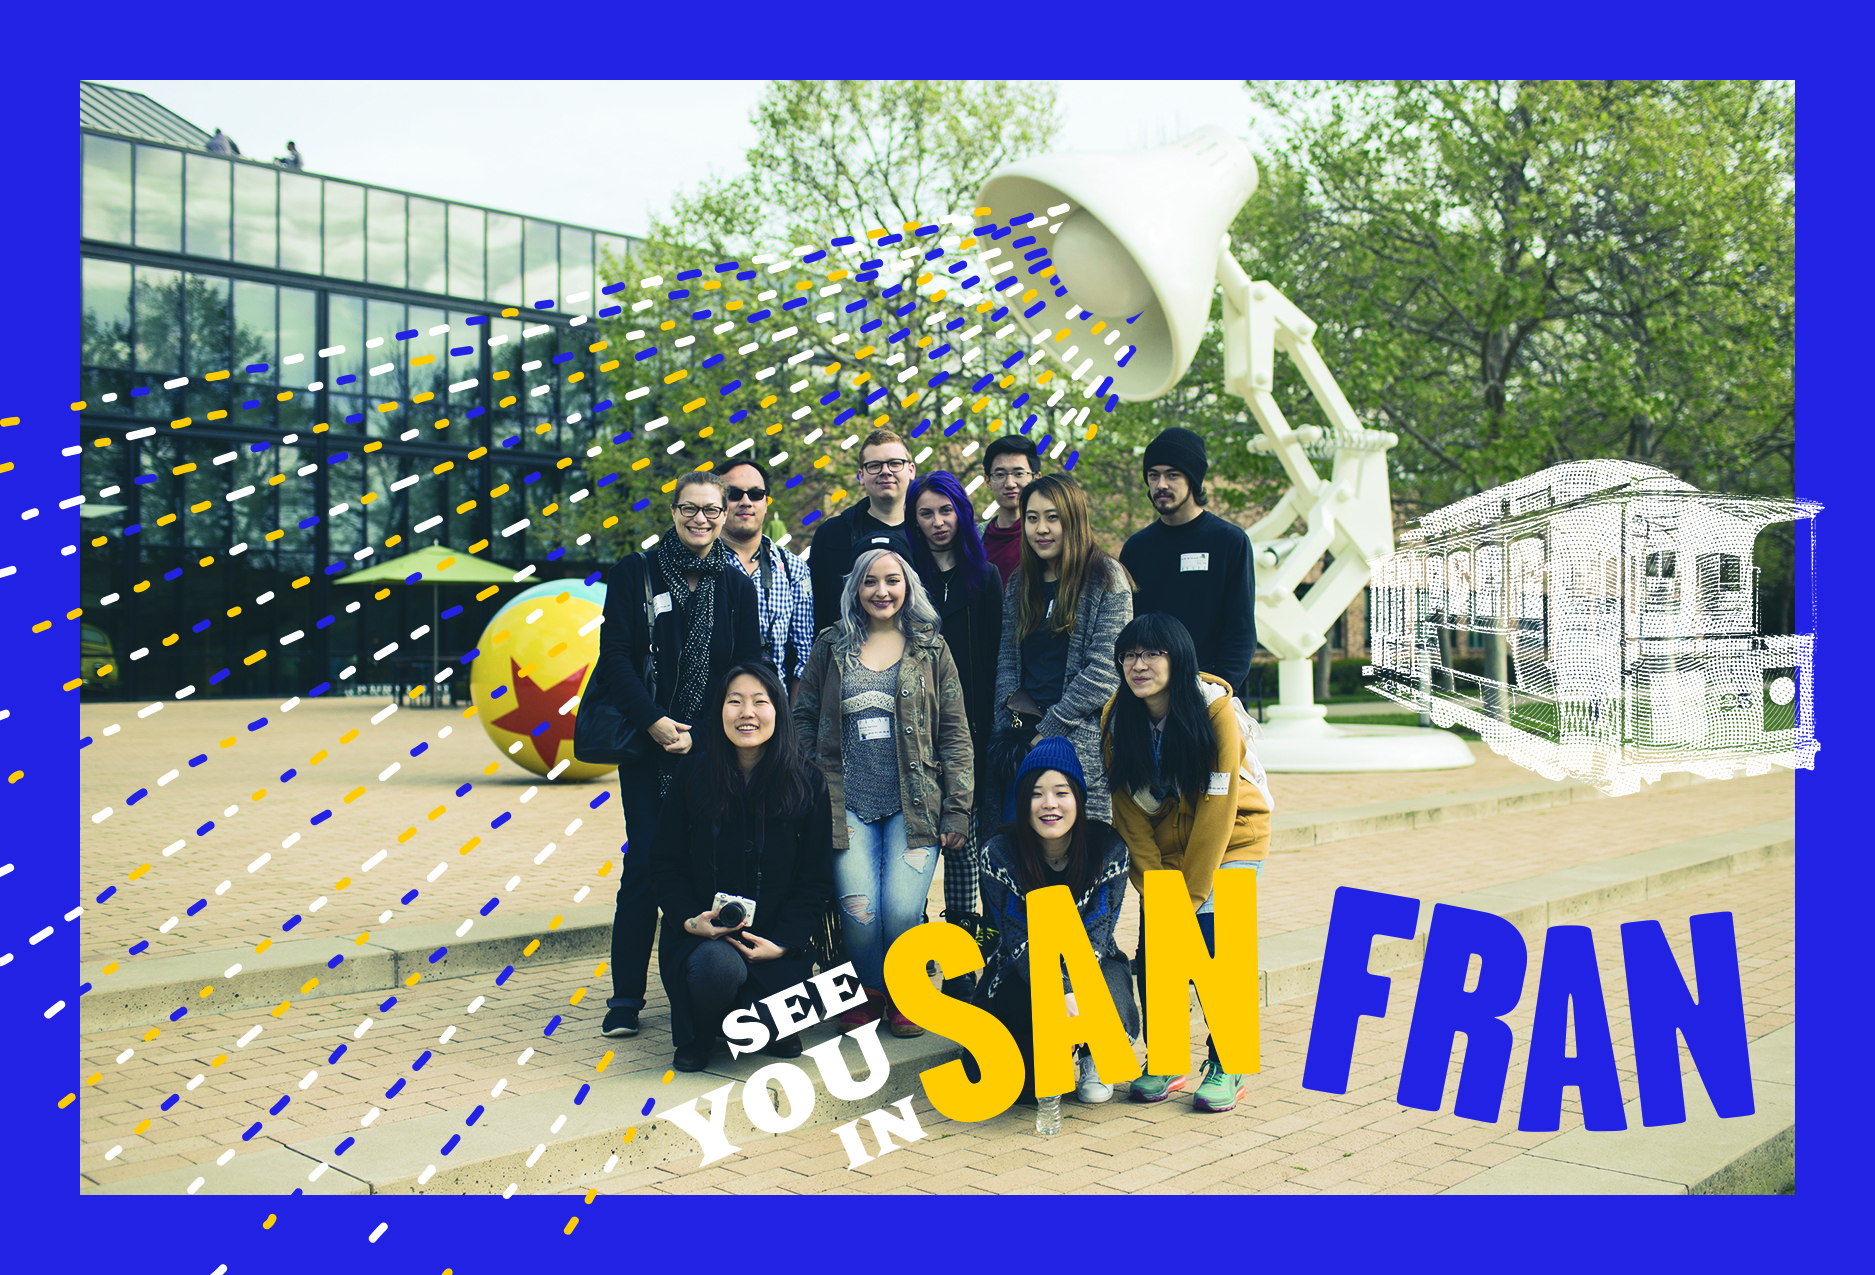 A postcard image of the San Francisco trip, showing a group of students and instructors in front of the Pixar studio.